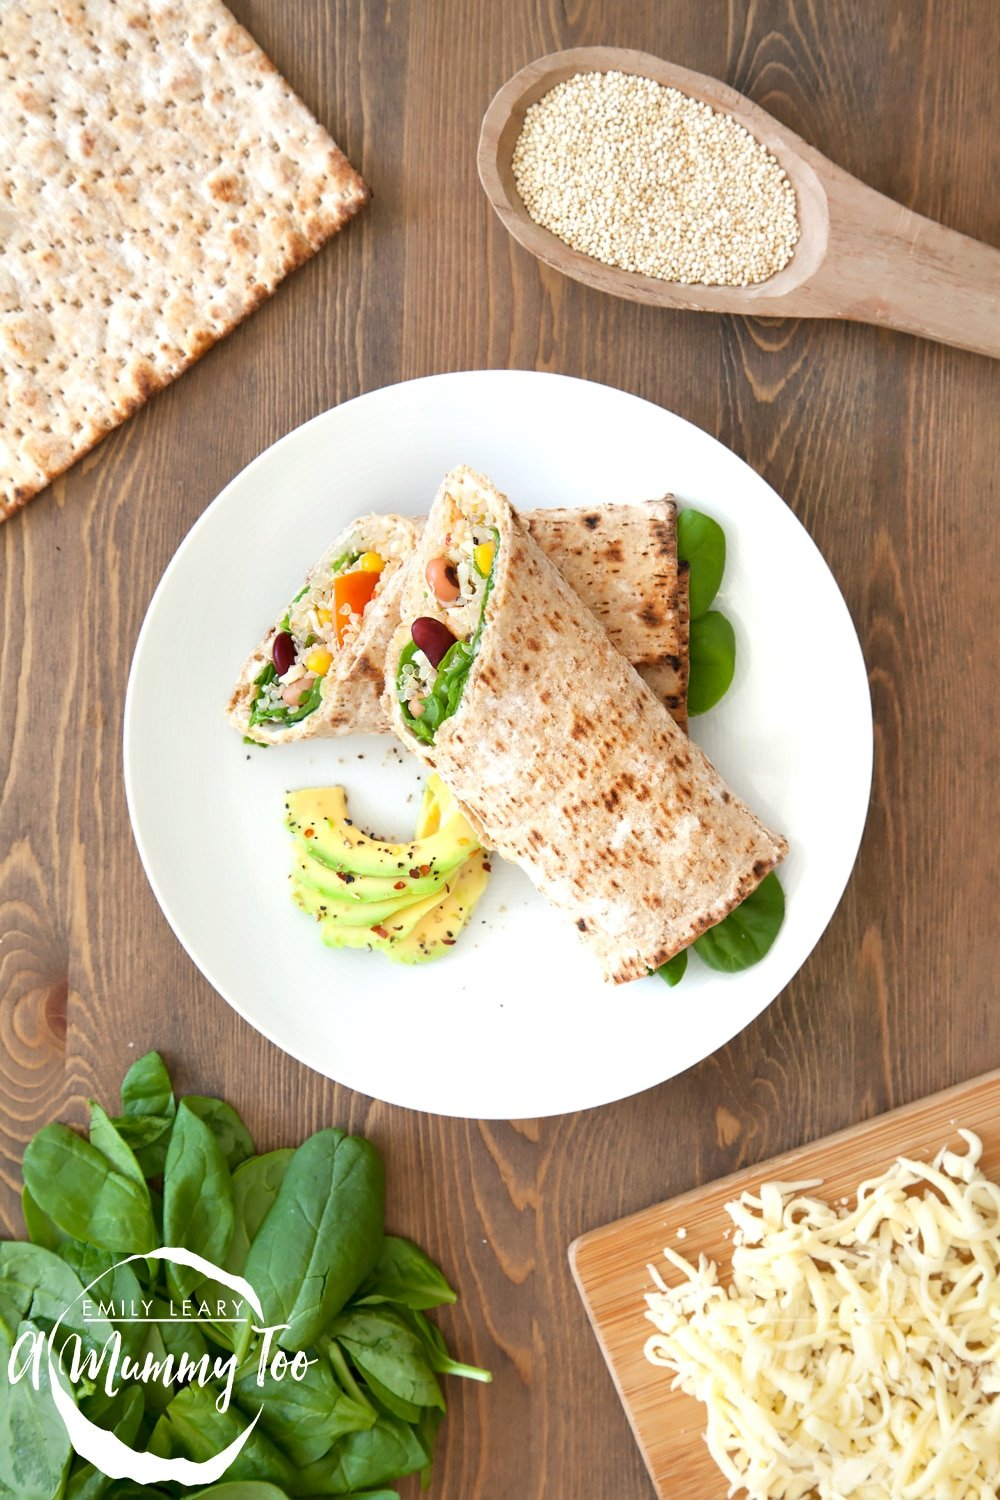 A spicy quinoa and bean protein wrap, served with avocado and chilli flakes to season